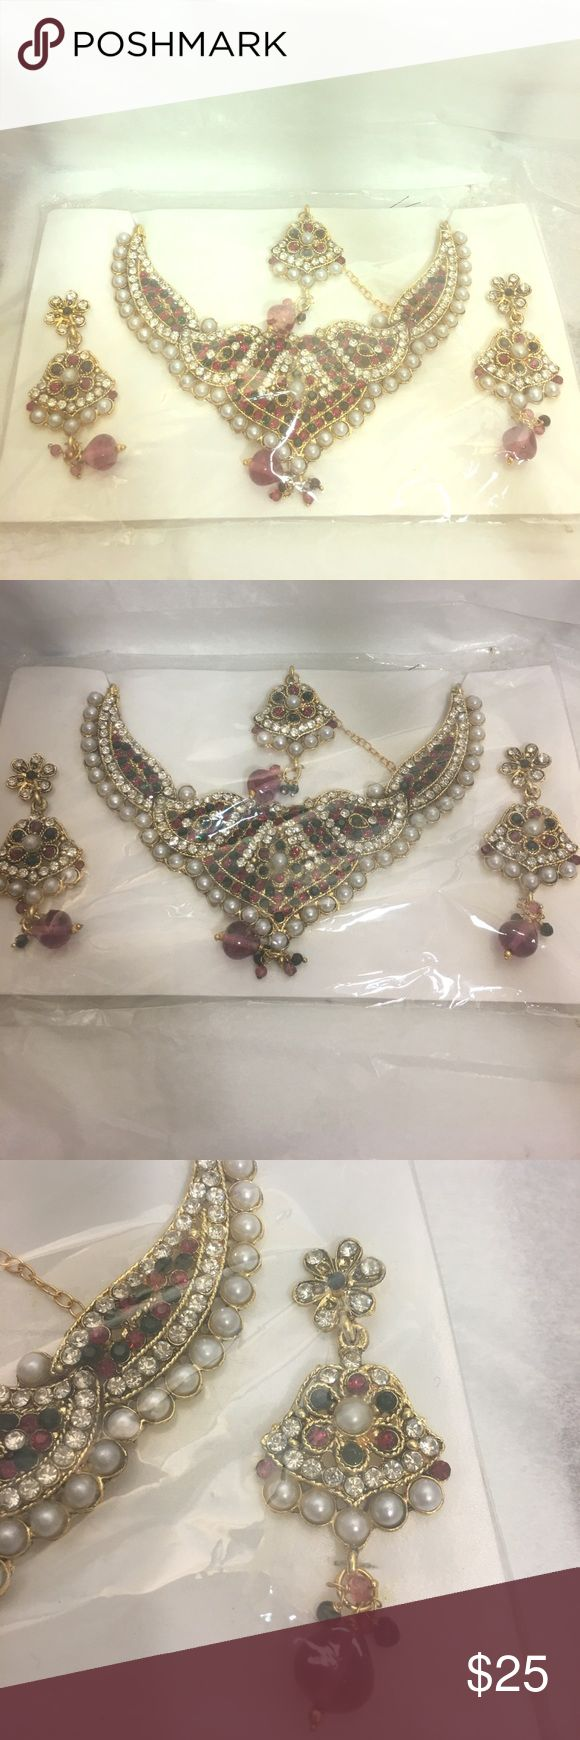 East Indian Asian  Bollywood Costume Jewelry Set Brand New In East Indian Bollywood Set with Bindi in packaging . Great Price Jewelry Necklaces